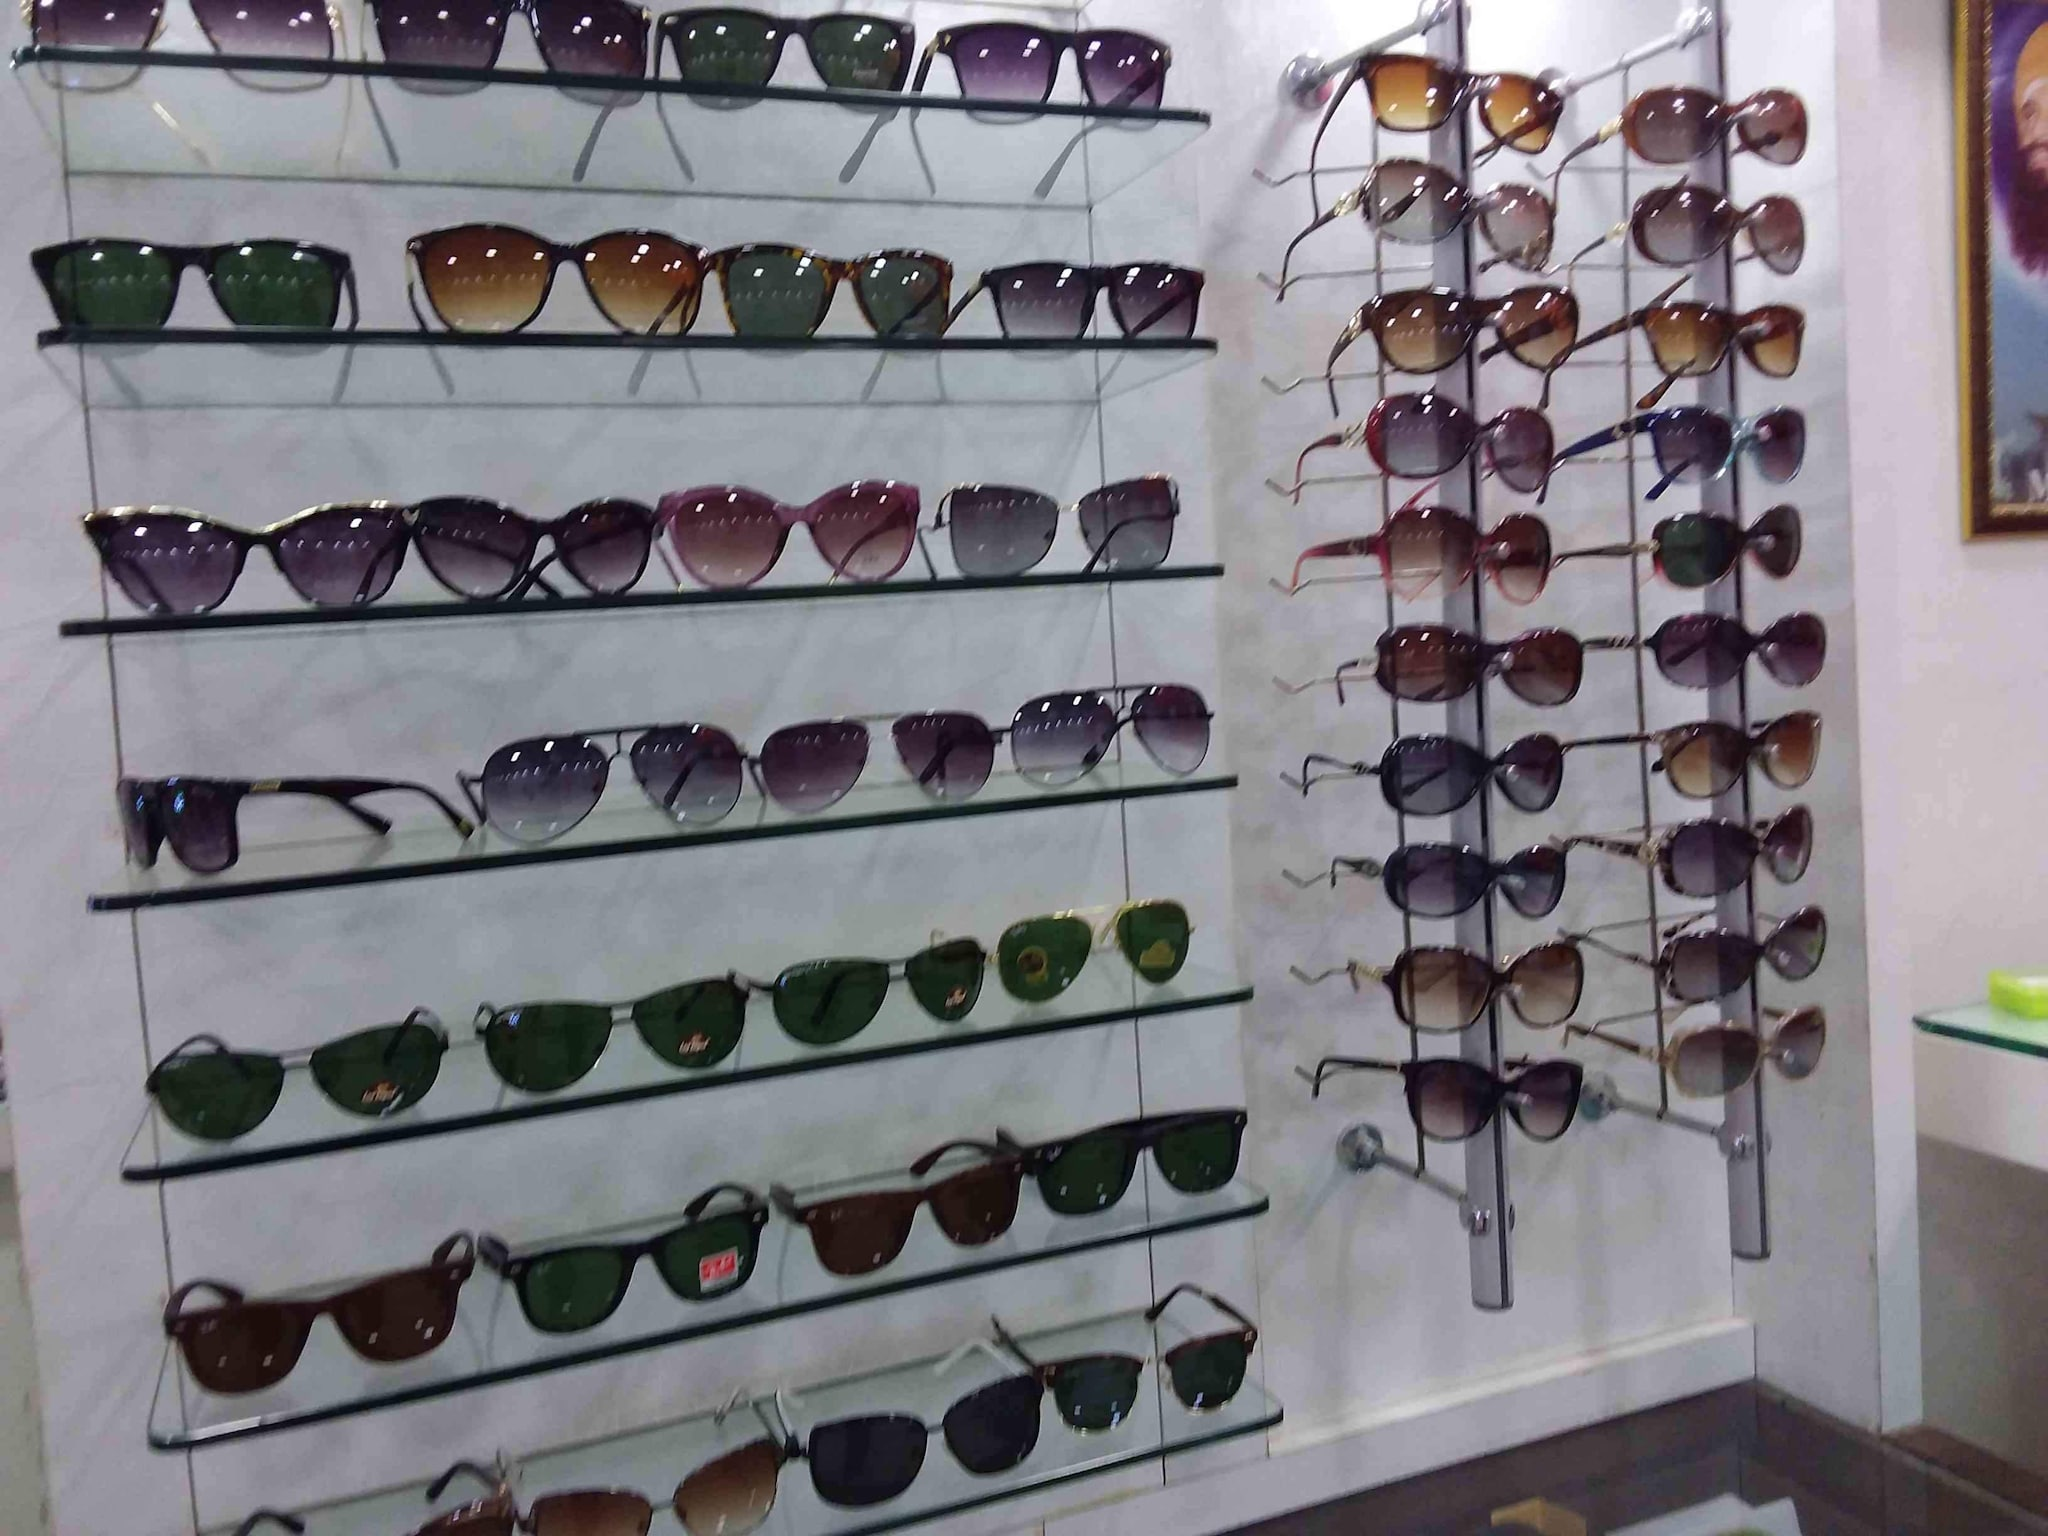 458f0cab7e19 Top 100 Crizal Spectacle Lens Dealers in Alpha 1-Greater Noida ...